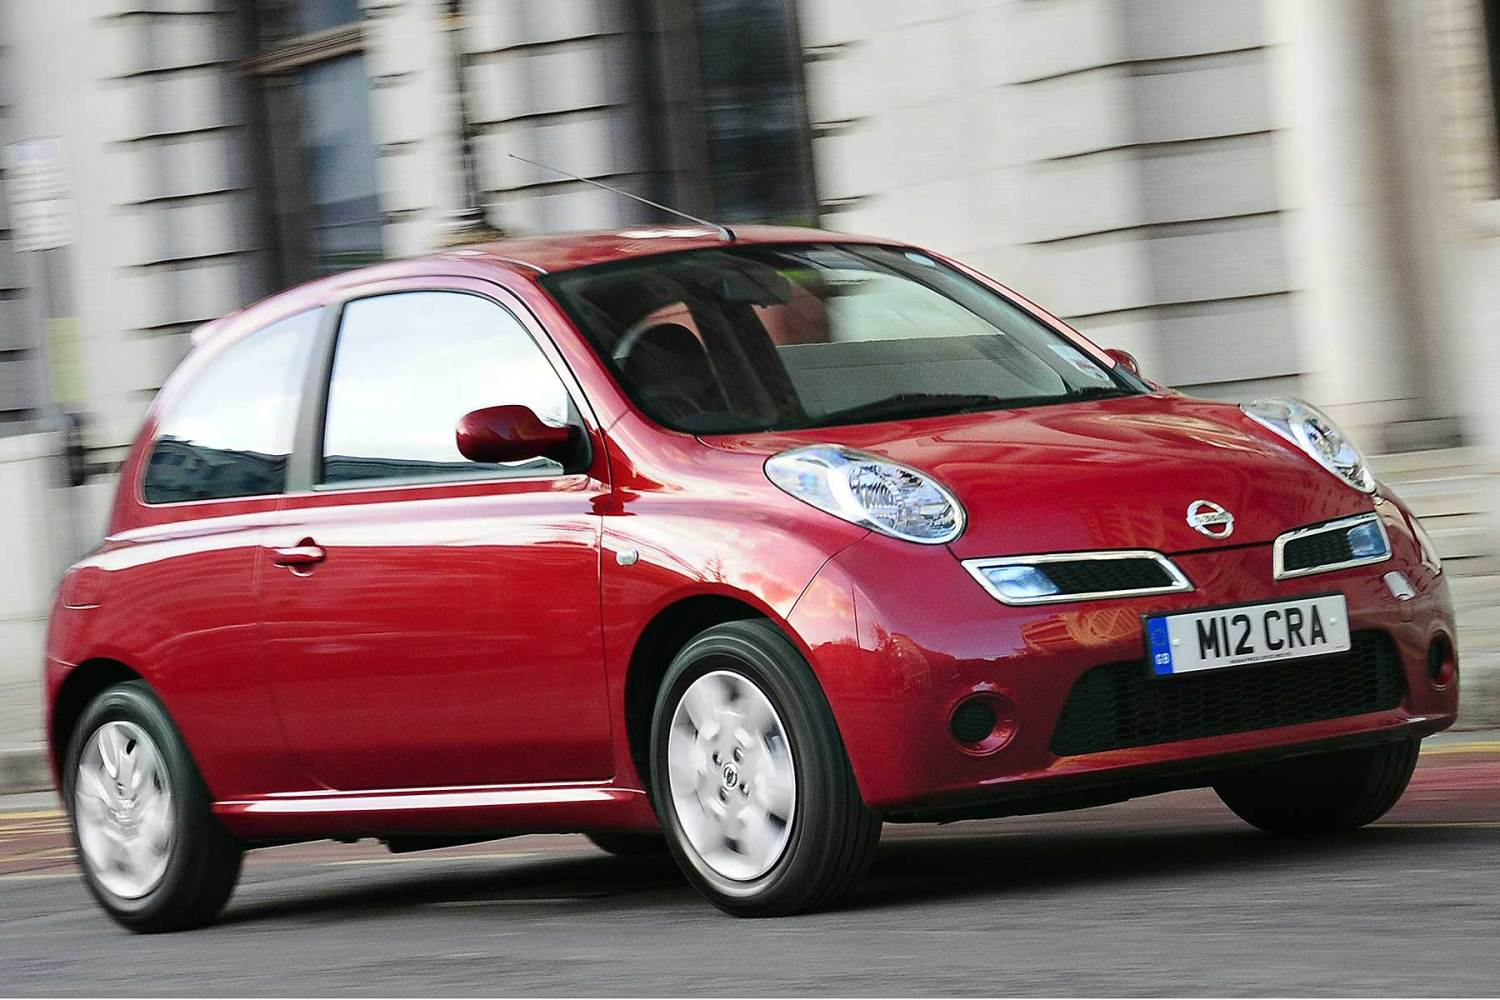 The cheapest cars to insure for 17-18 year olds: Nissan Micra